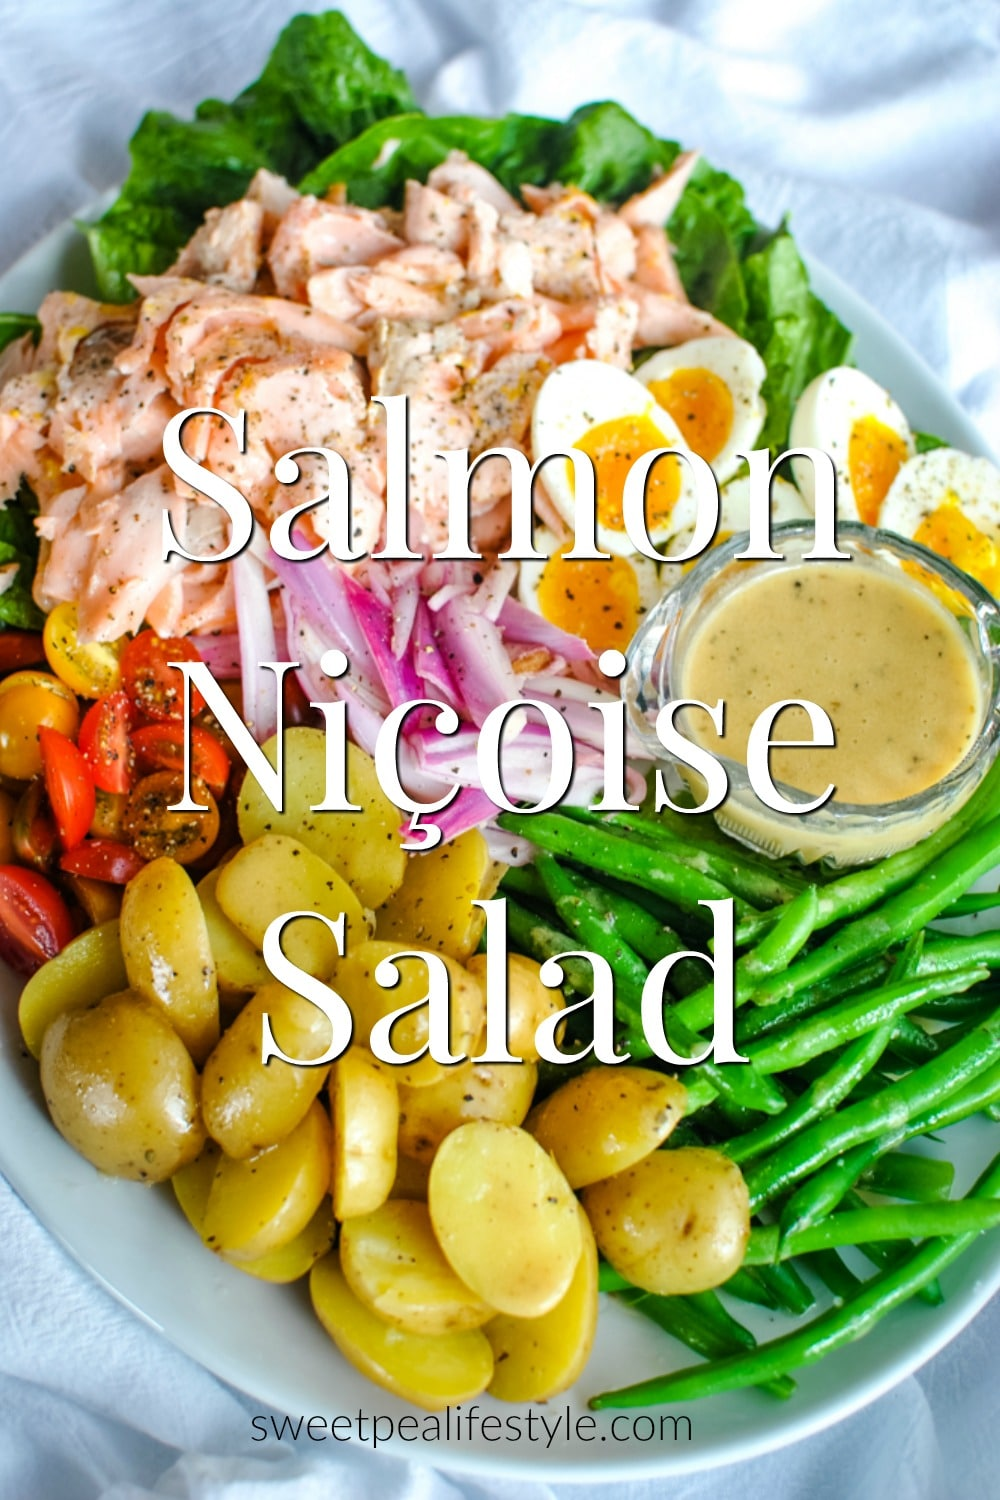 Salmon Nicoise Salad Recipe from Sweetpea Lifestyle